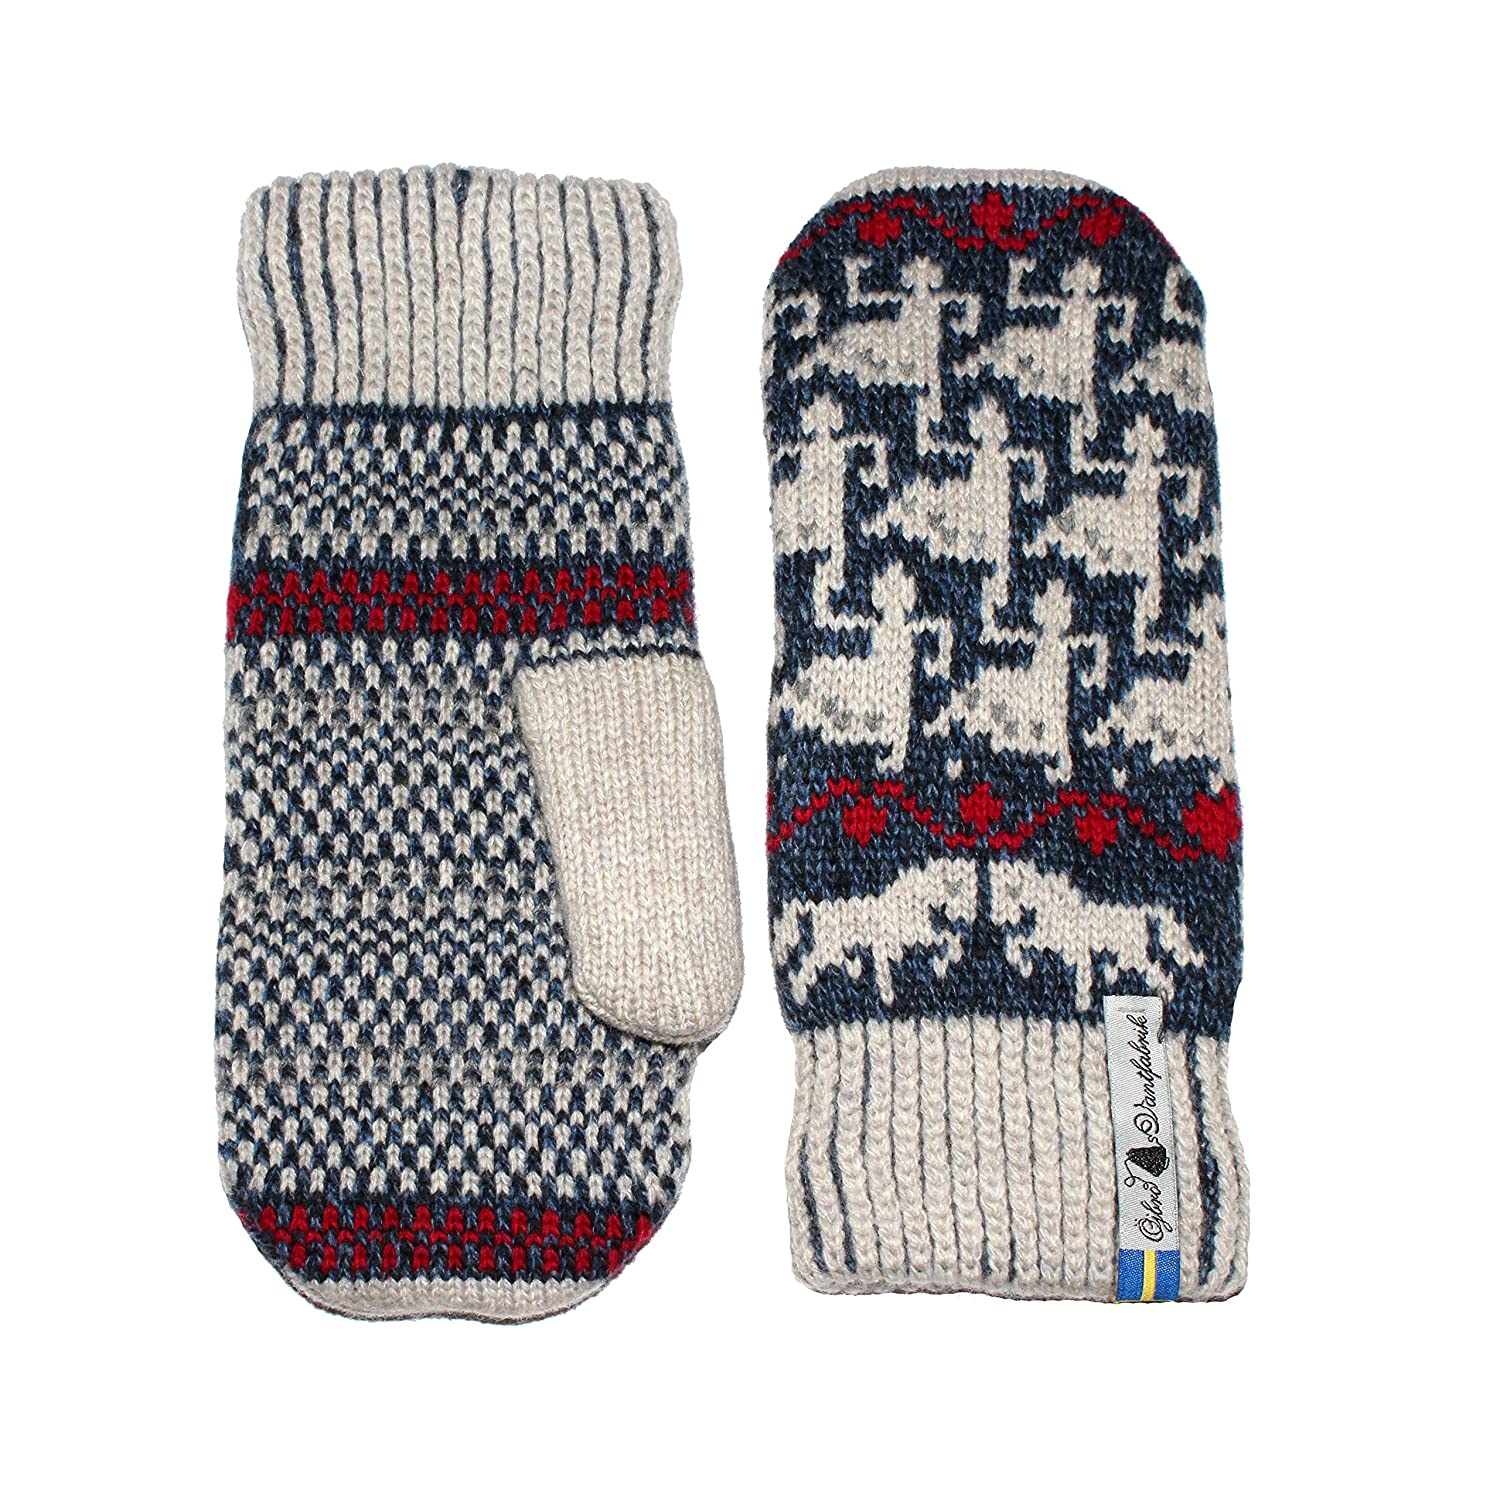 fc2615745a1 Öjbro Swedish made 100% Merino Wool Soft Thick   Extremely Warm Mittens